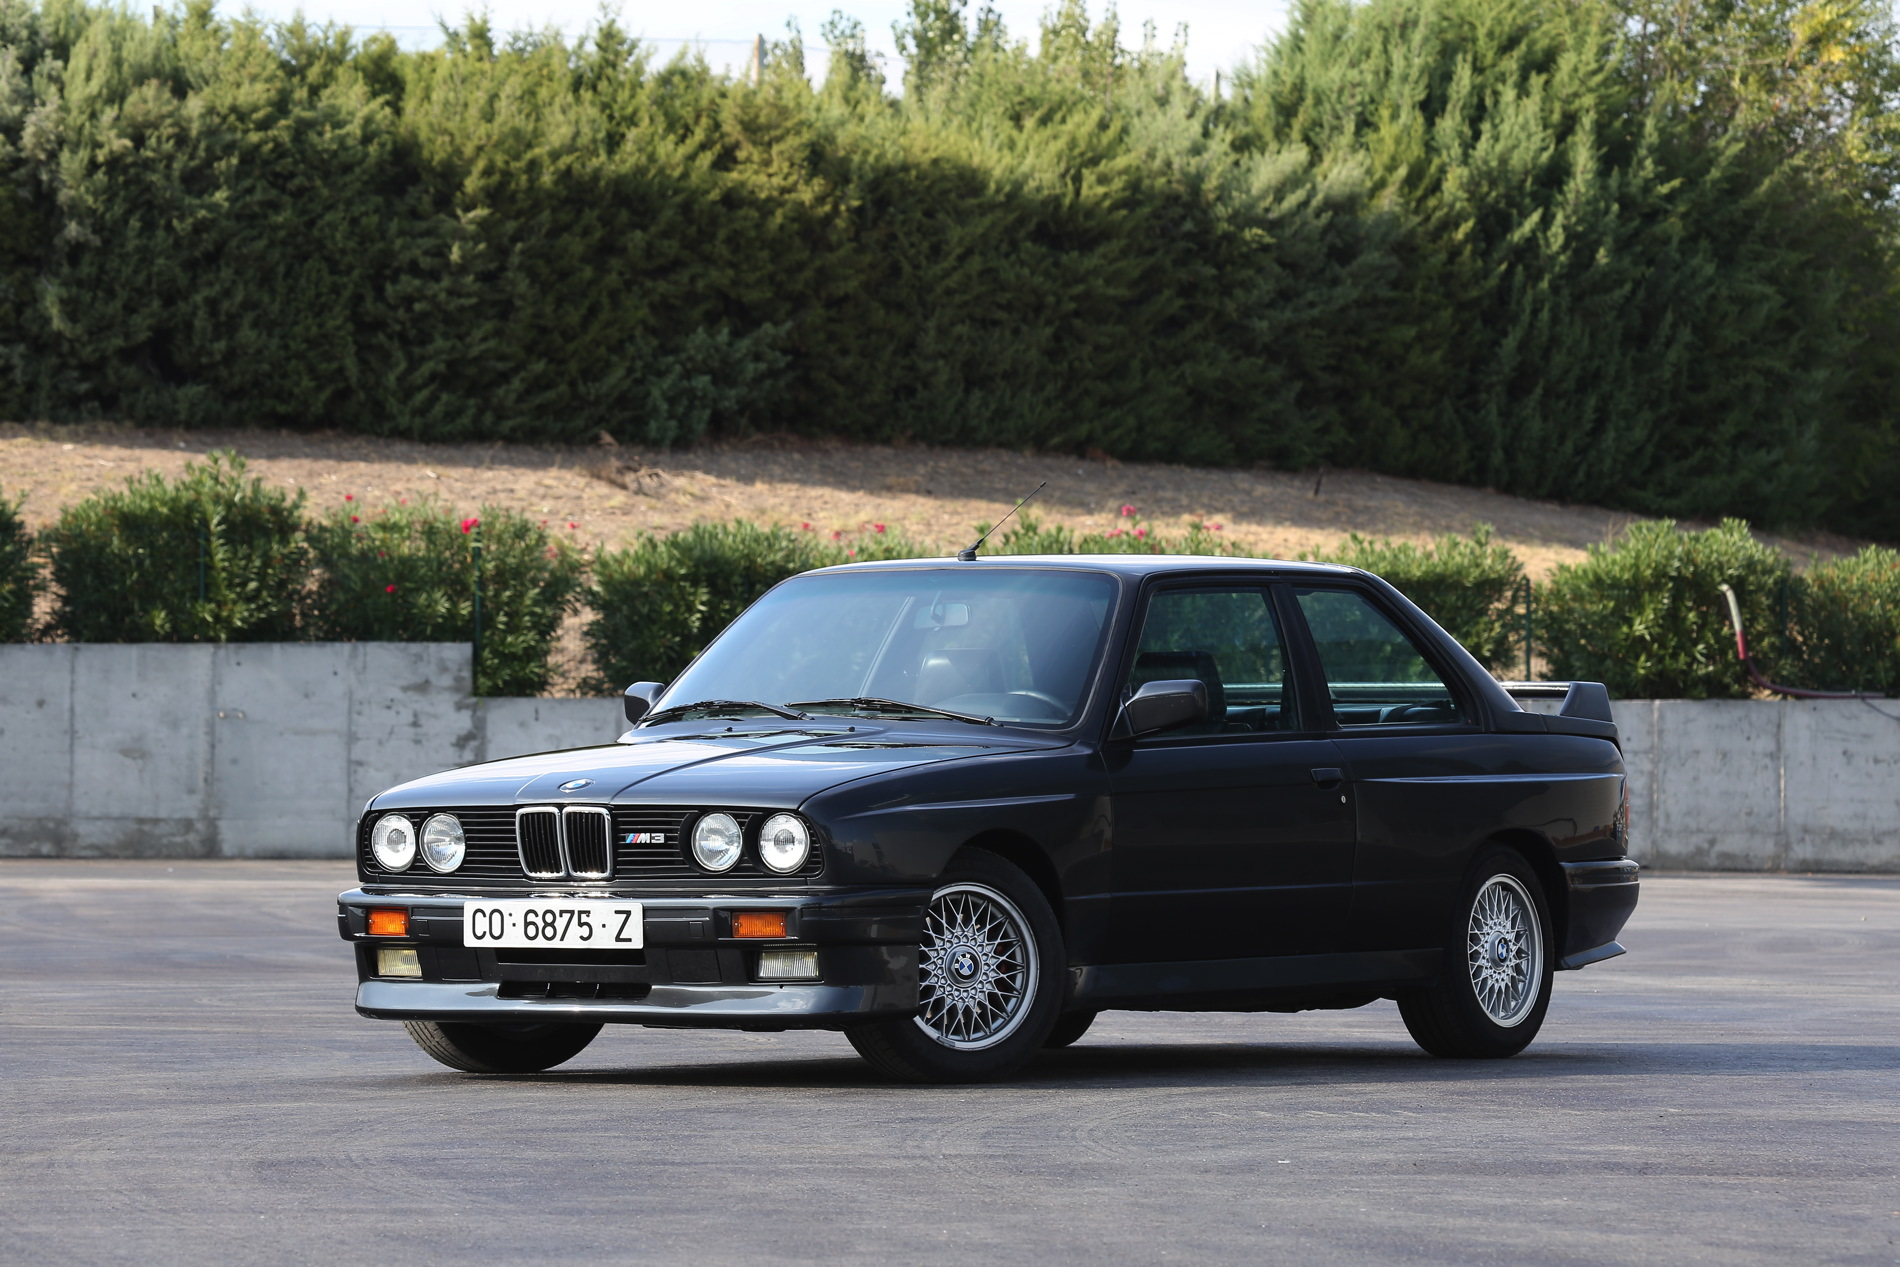 BMW M3 E30 photos 1